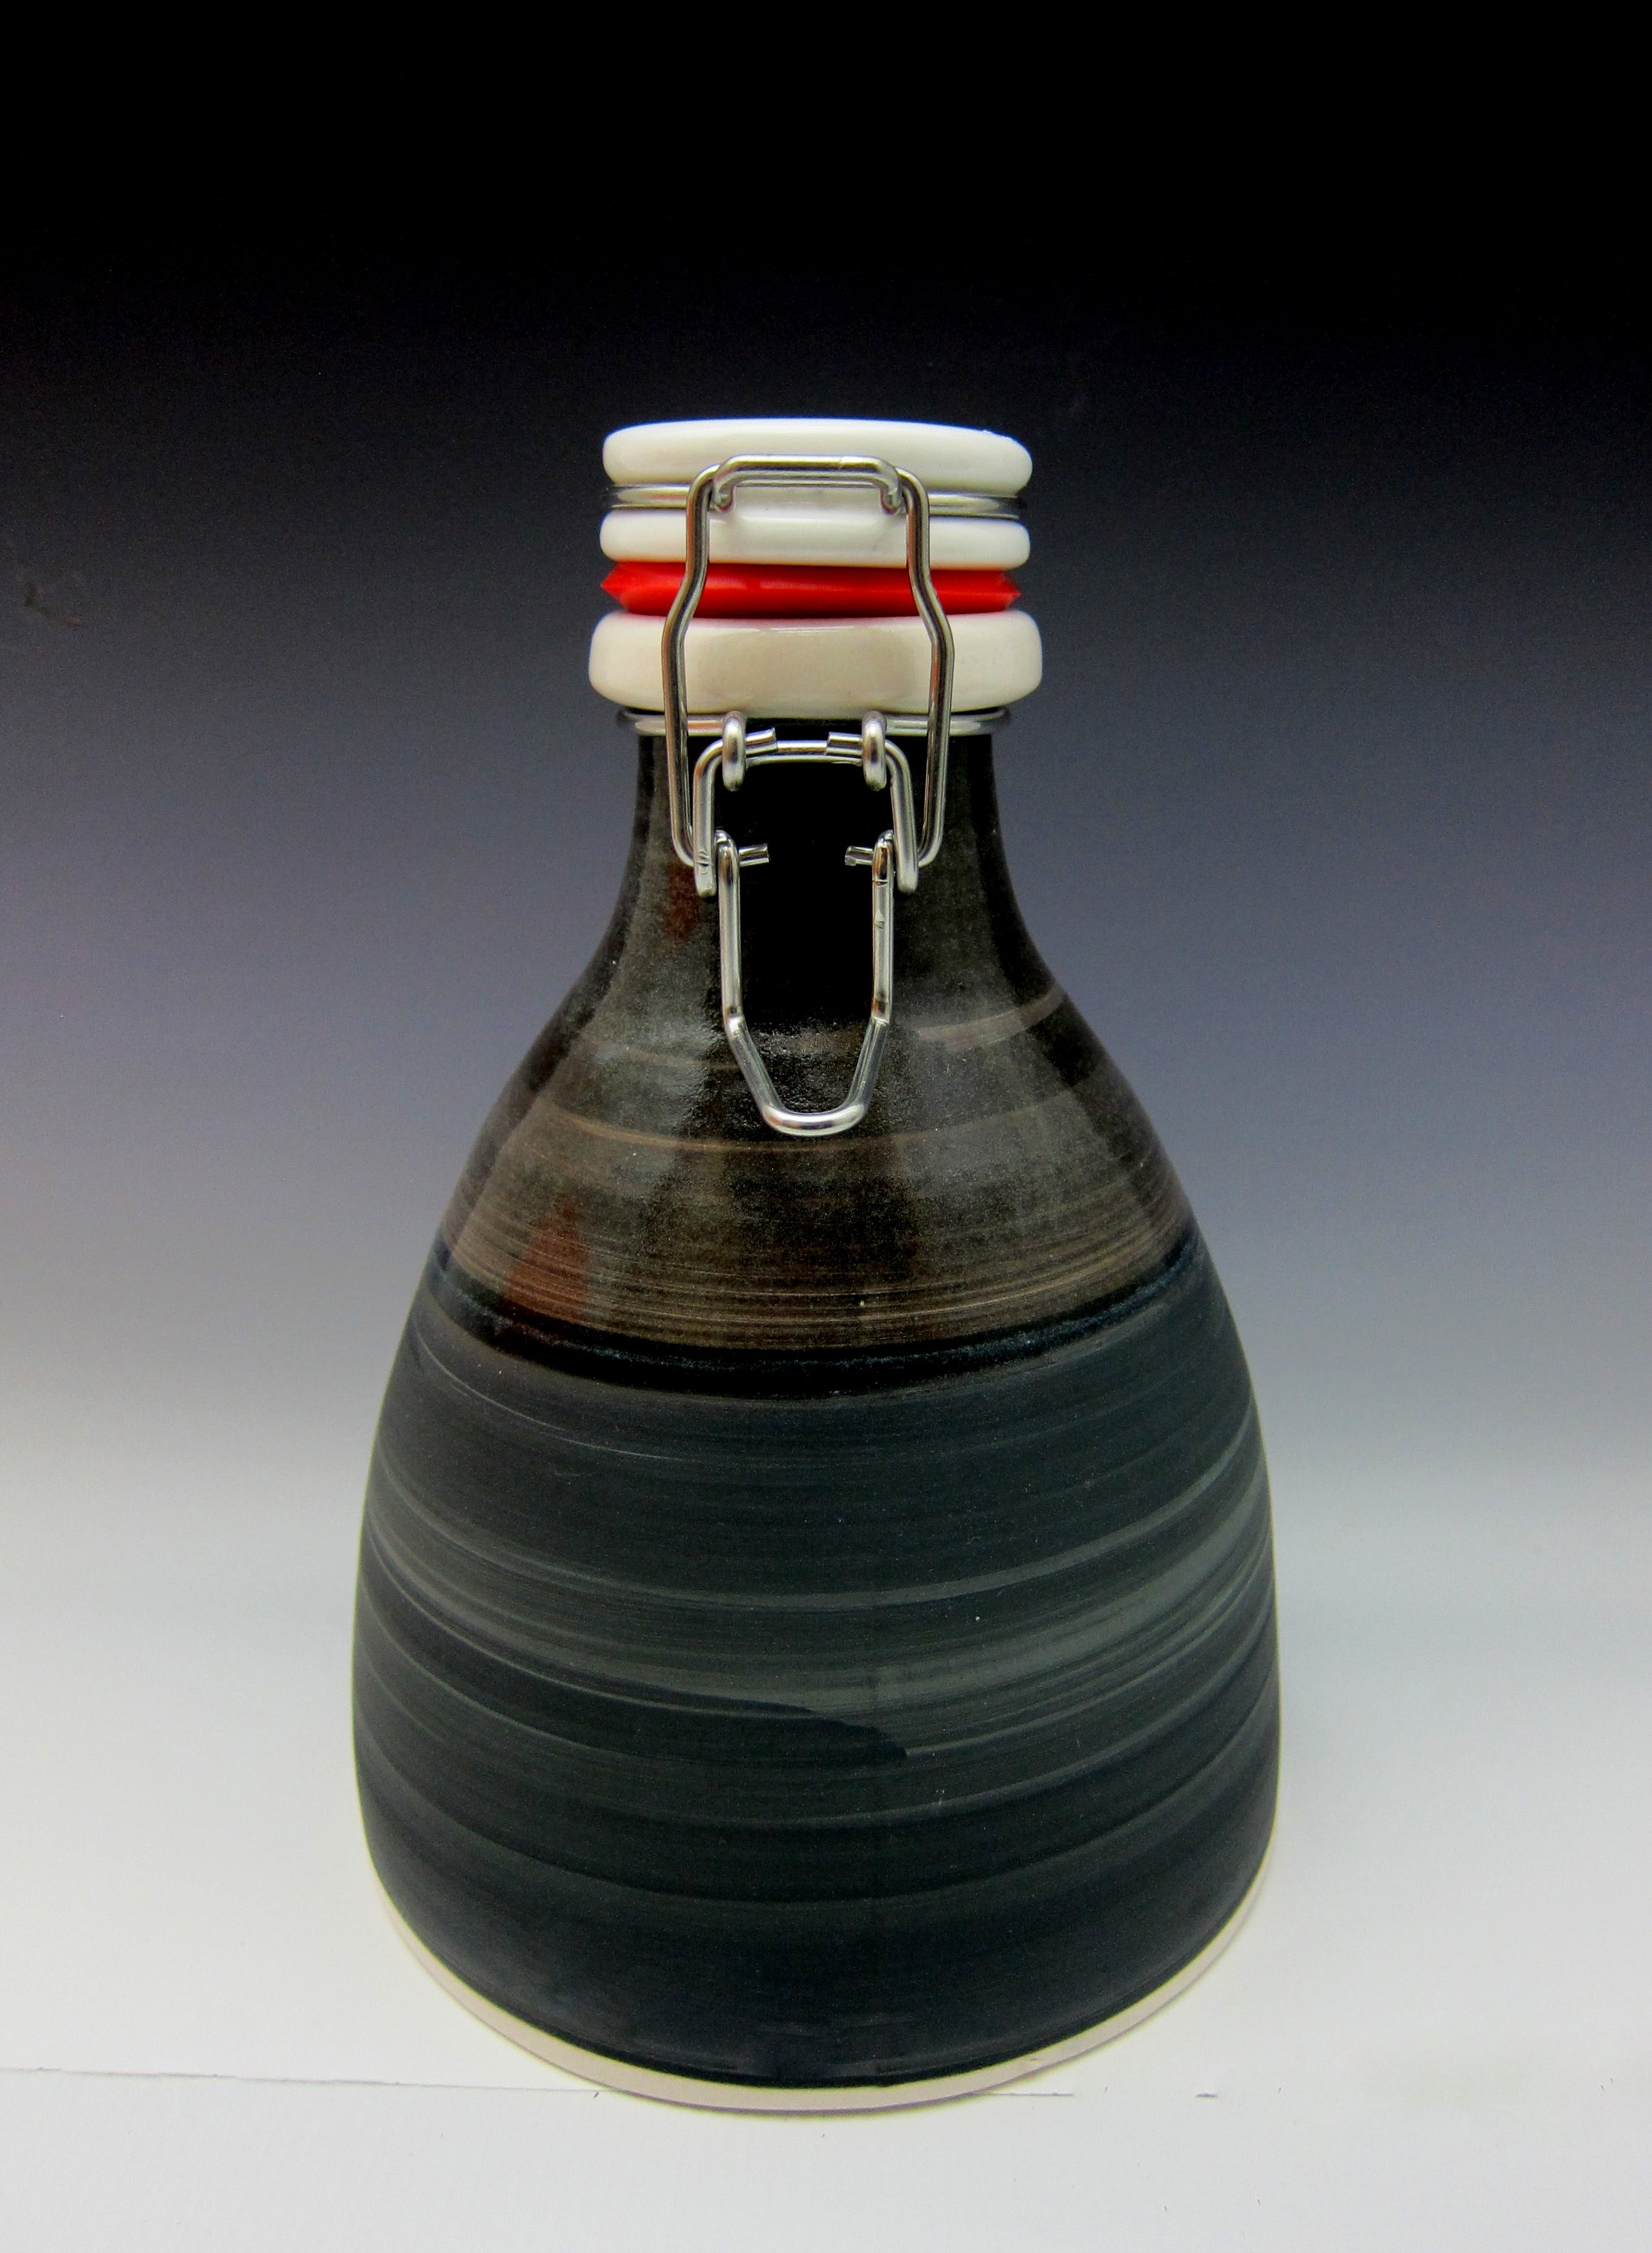 32oz ceramic growler with flip-top lid and chalk board surface  - 32oz ceramic beer growler with flip top lid - sold by Hand Crafted Growlers